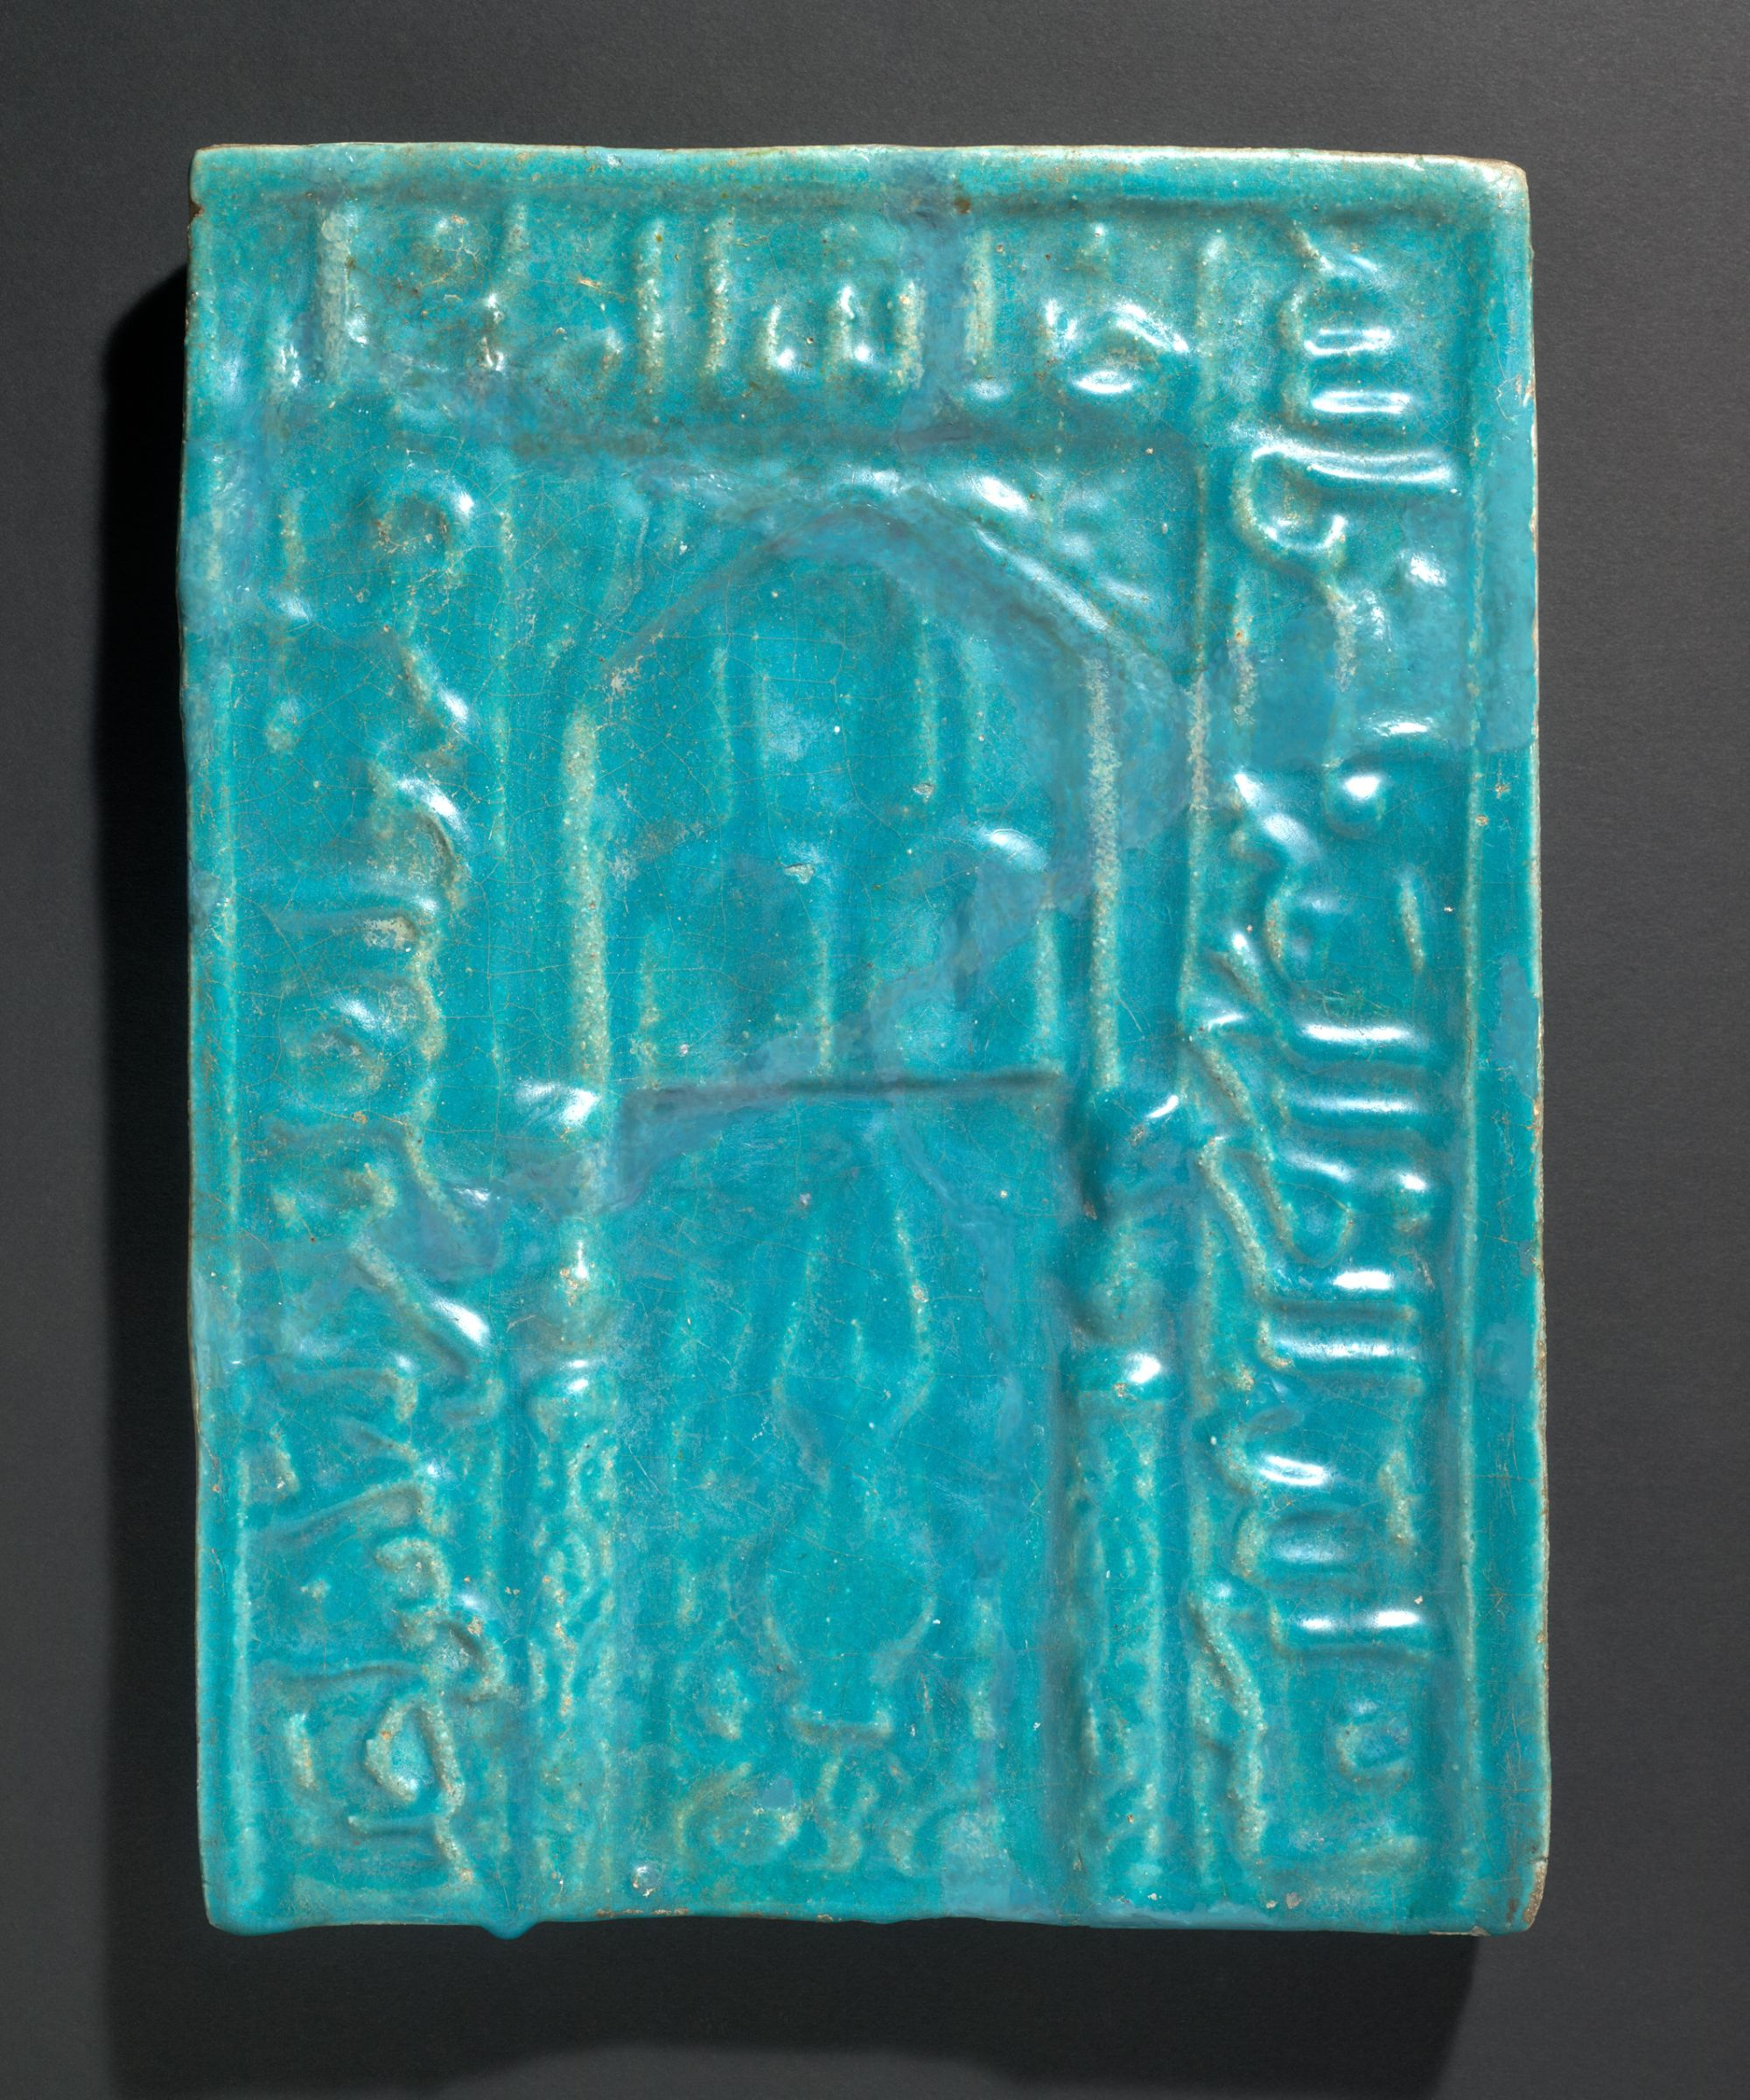 Plaque with mihrab motif framed by inscription in relief